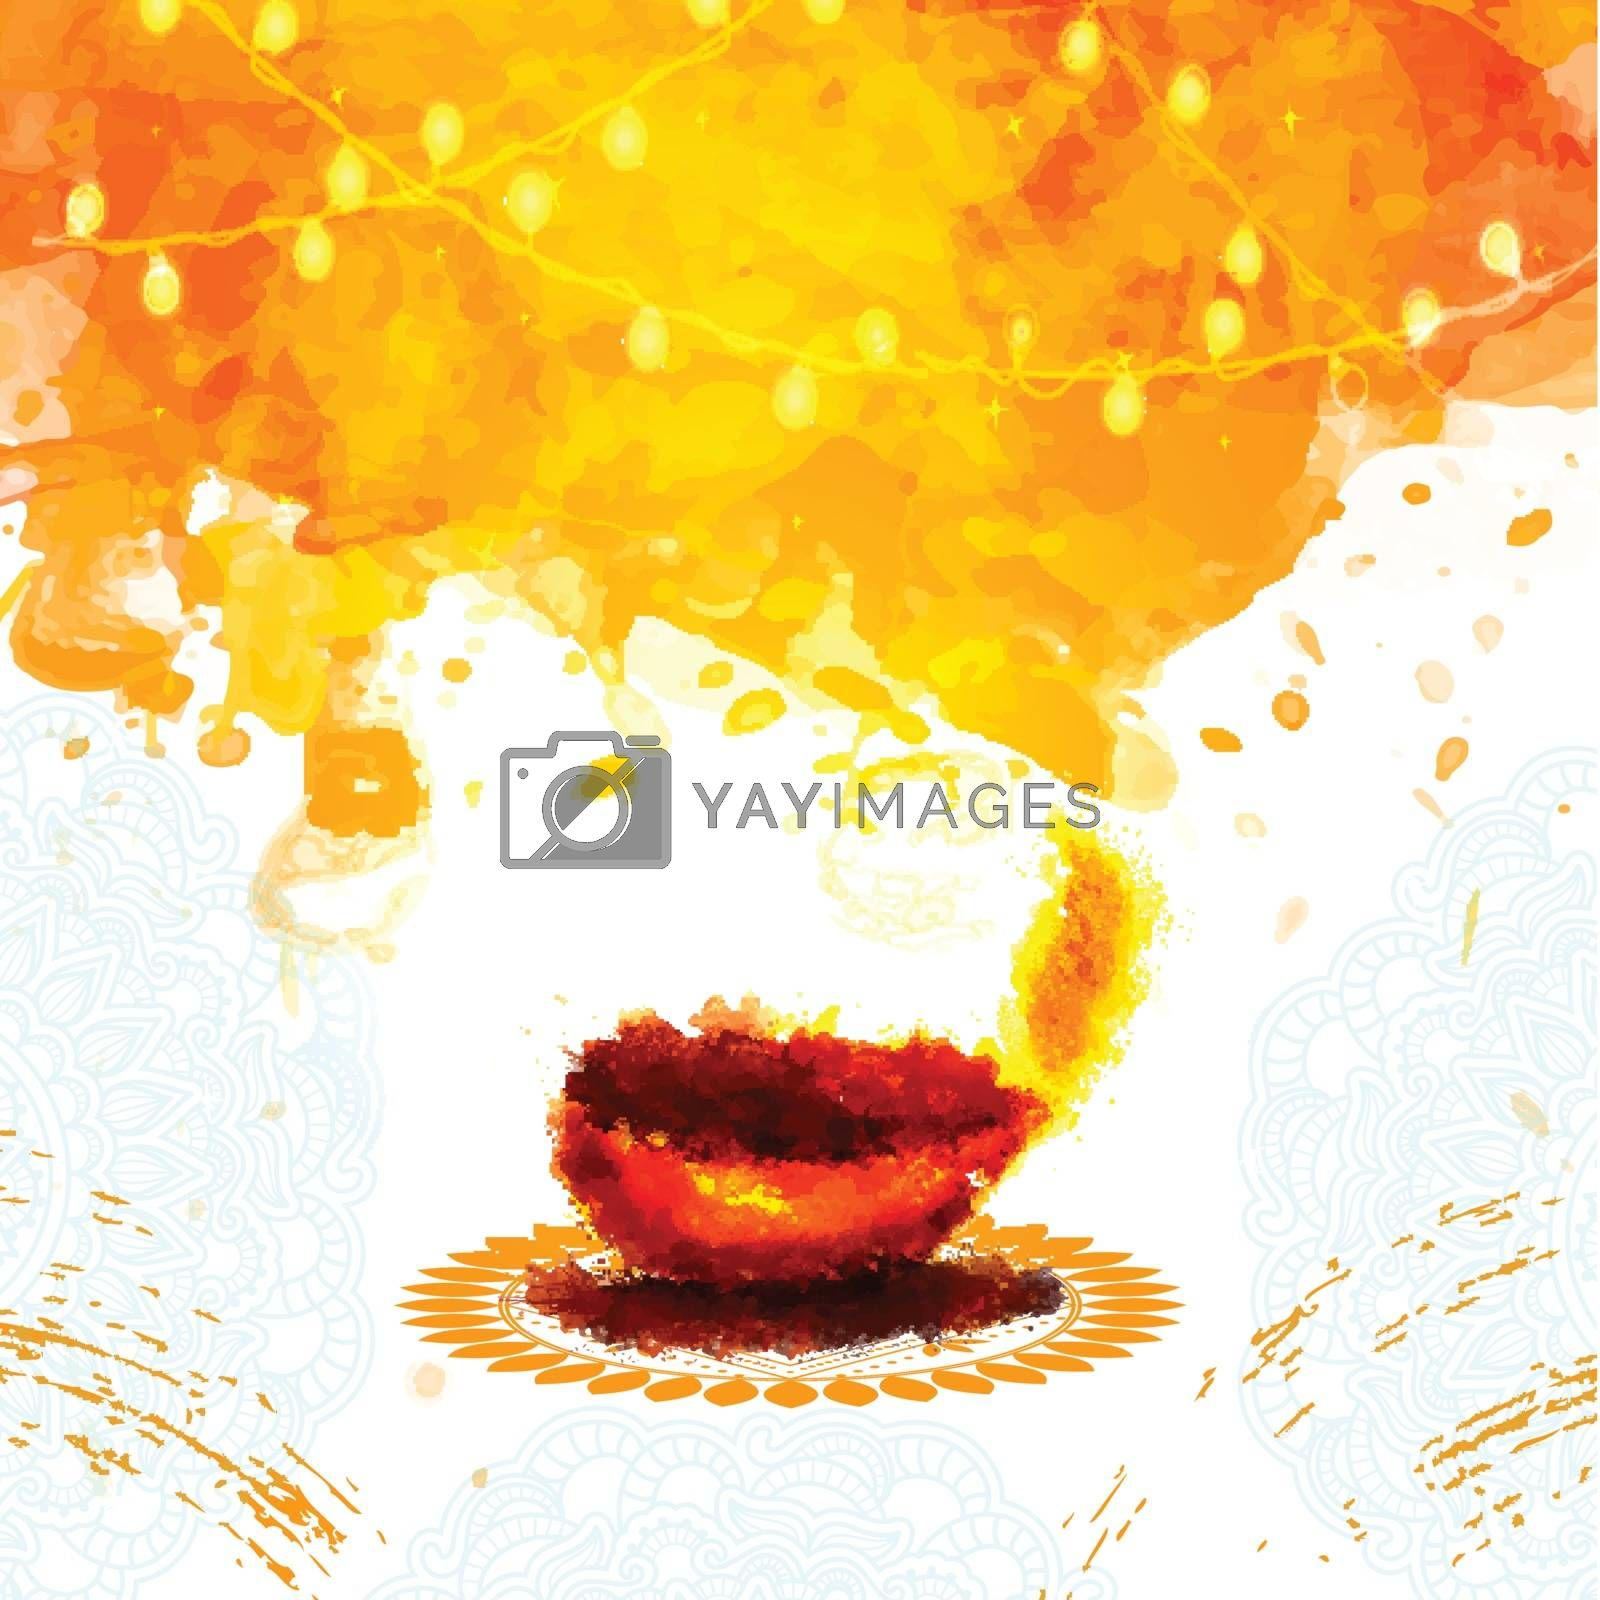 Happy Diwali celebration background with creative abstract Oil Lamp (Diya) and lights decoration, Elegant Greeting Card with space for your wishes.